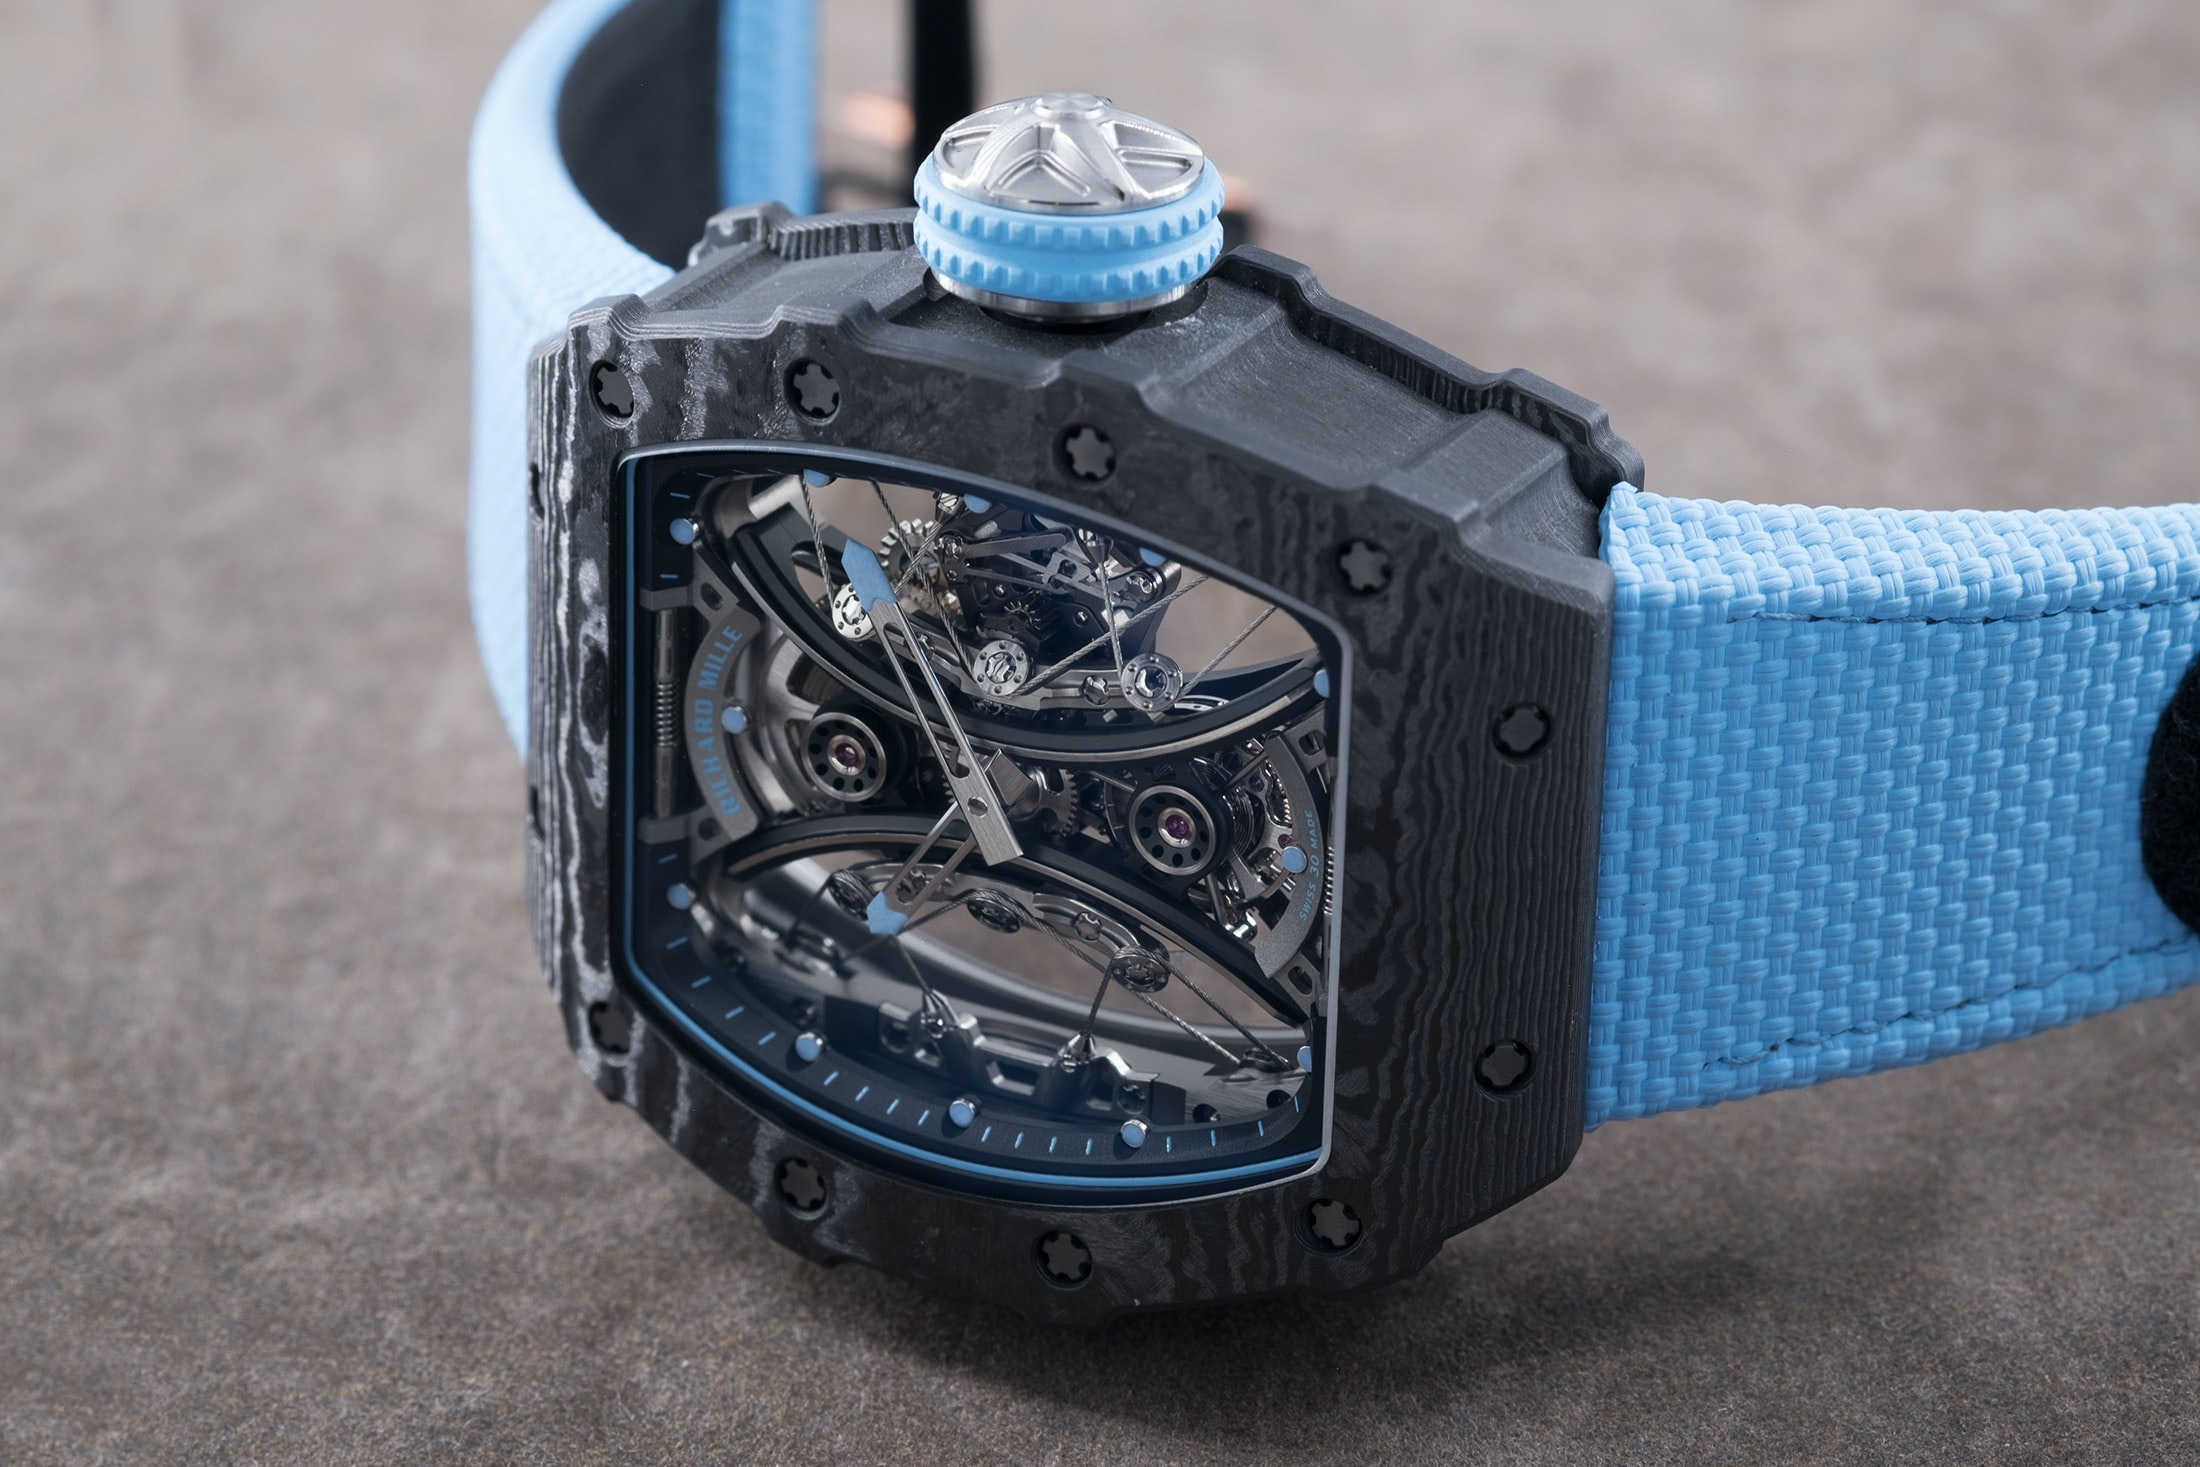 Hands-On: The Richard Mille RM 53-01 Tourbillon Pablo Mac Donough Hands-On: The Richard Mille RM 53-01 Tourbillon Pablo Mac Donough rm5301 08jpg ixlib rails 1